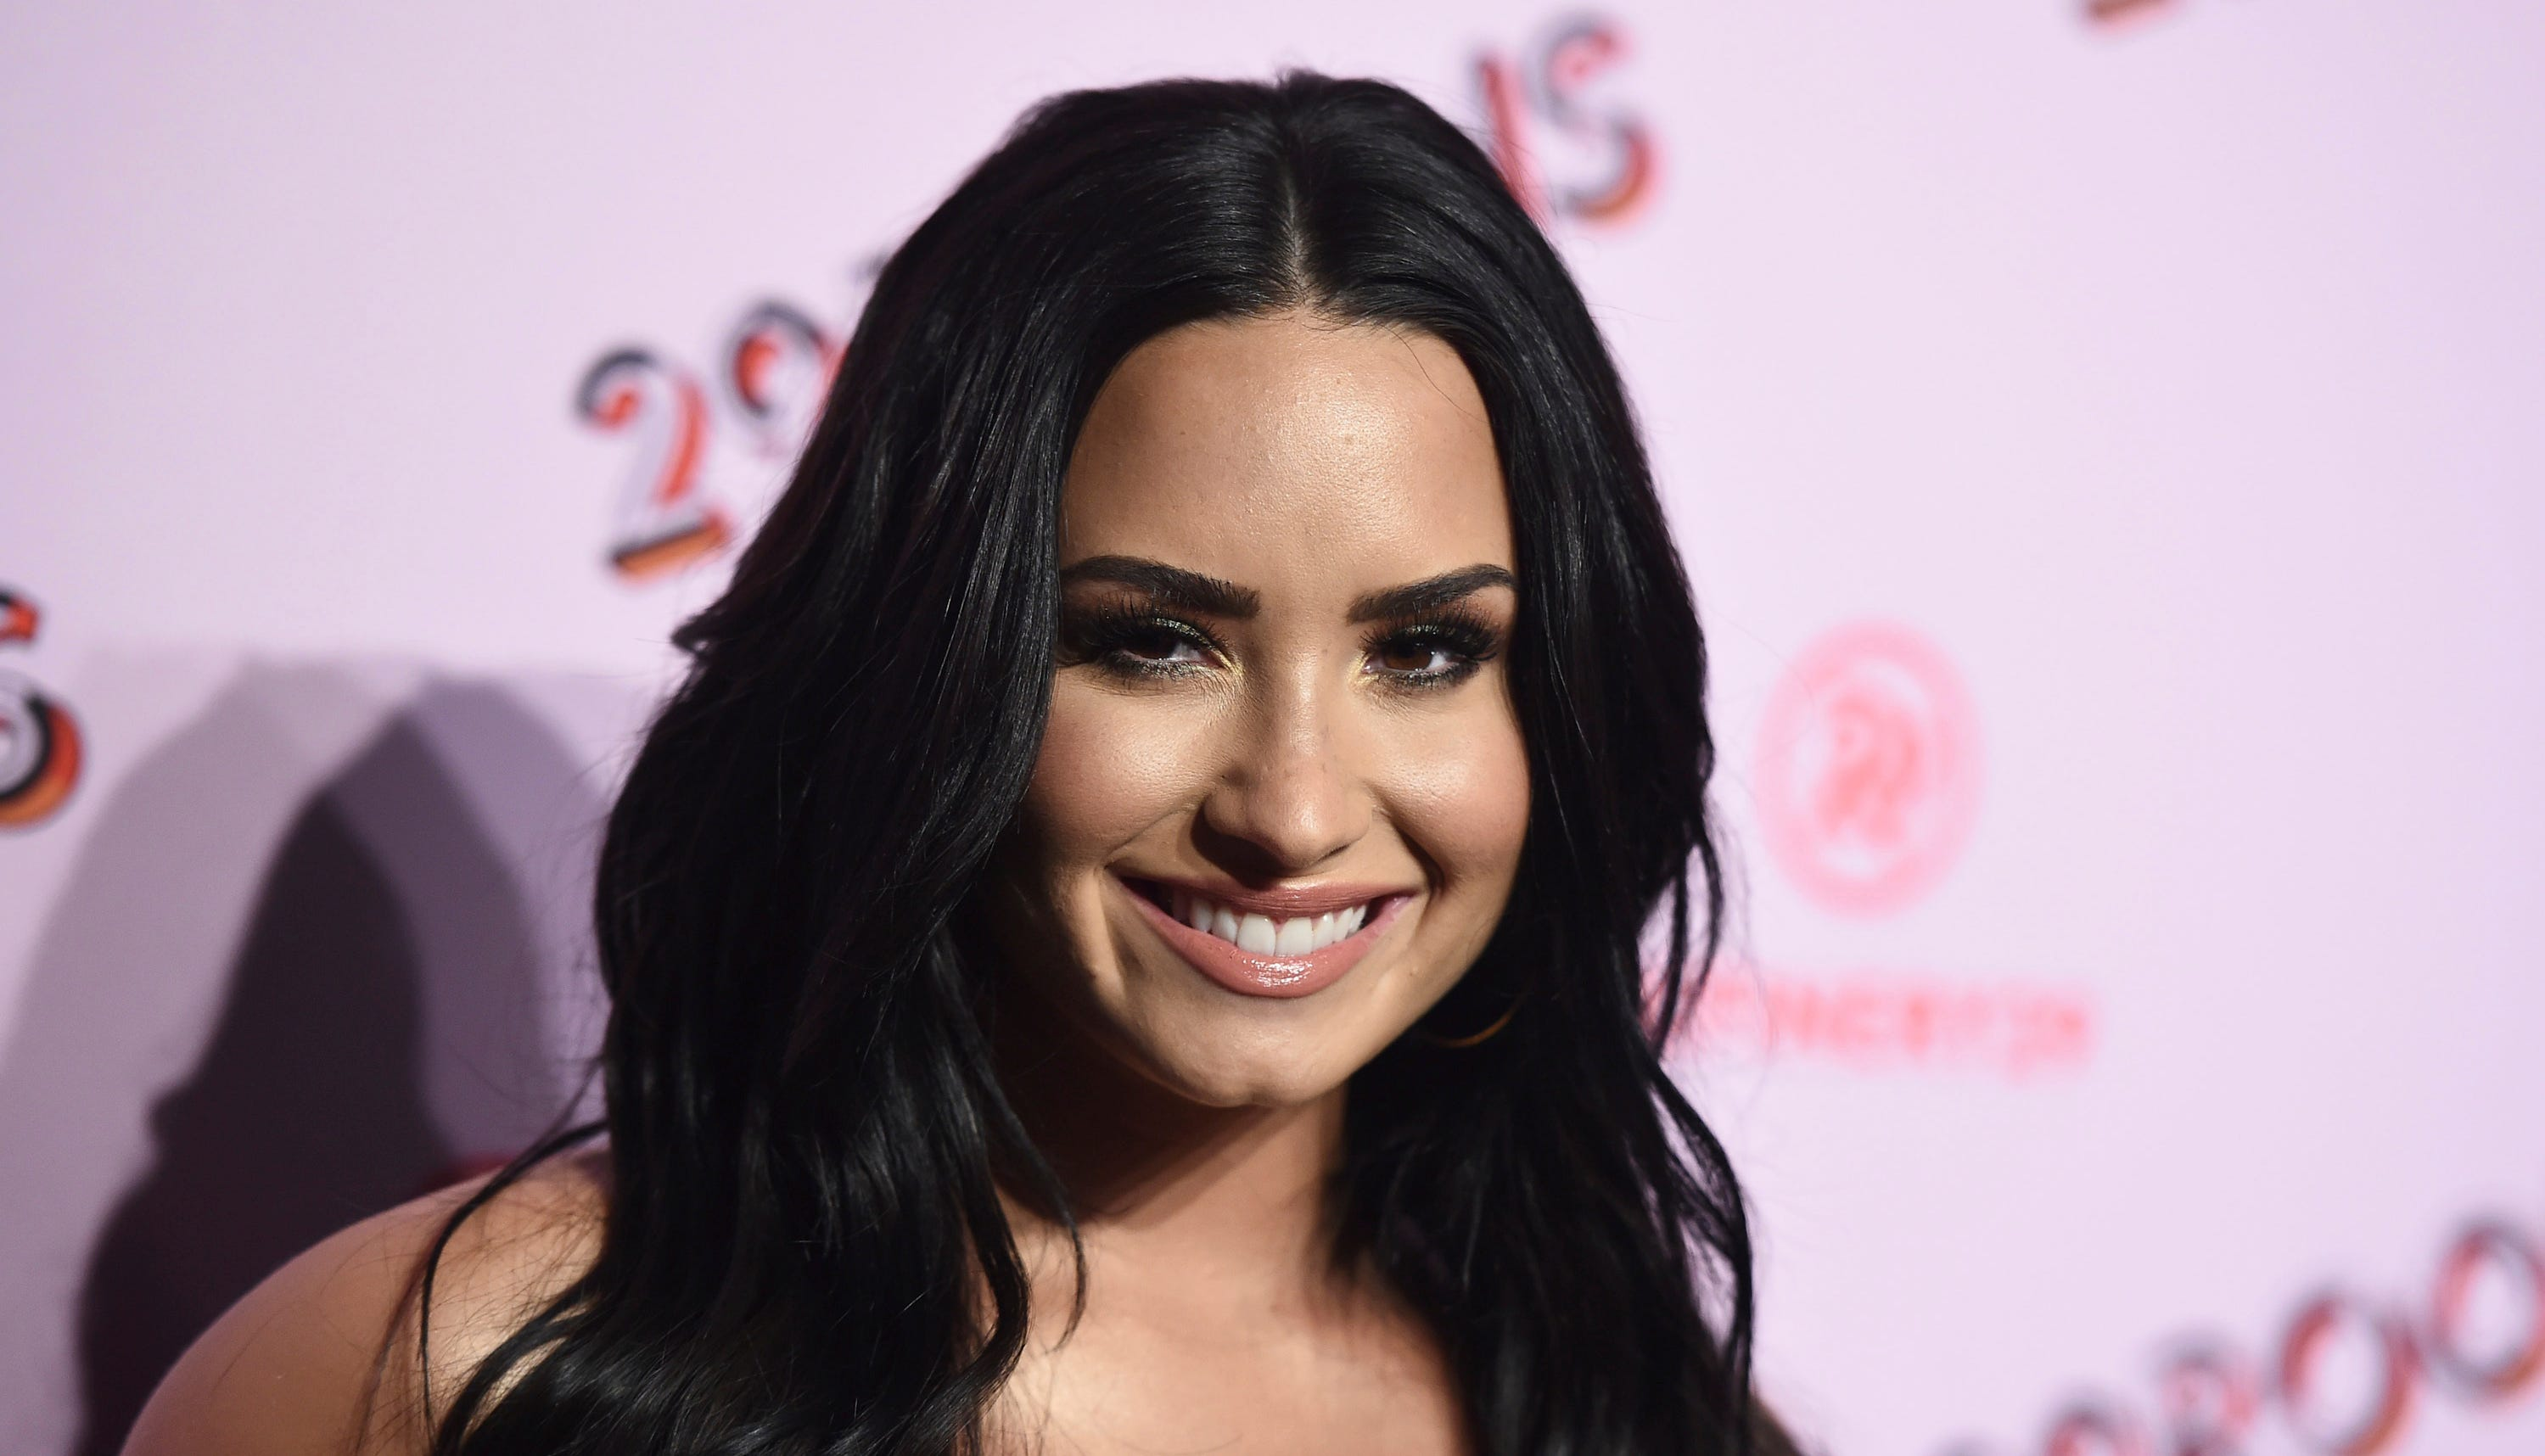 """Demi Lovato turned 26 on Aug. 20, 2018. The singer-actress has always seemed """"Confident"""" on the carpet, strutting and posing in style. In celebration of her birthday, we've assembled her best looks."""